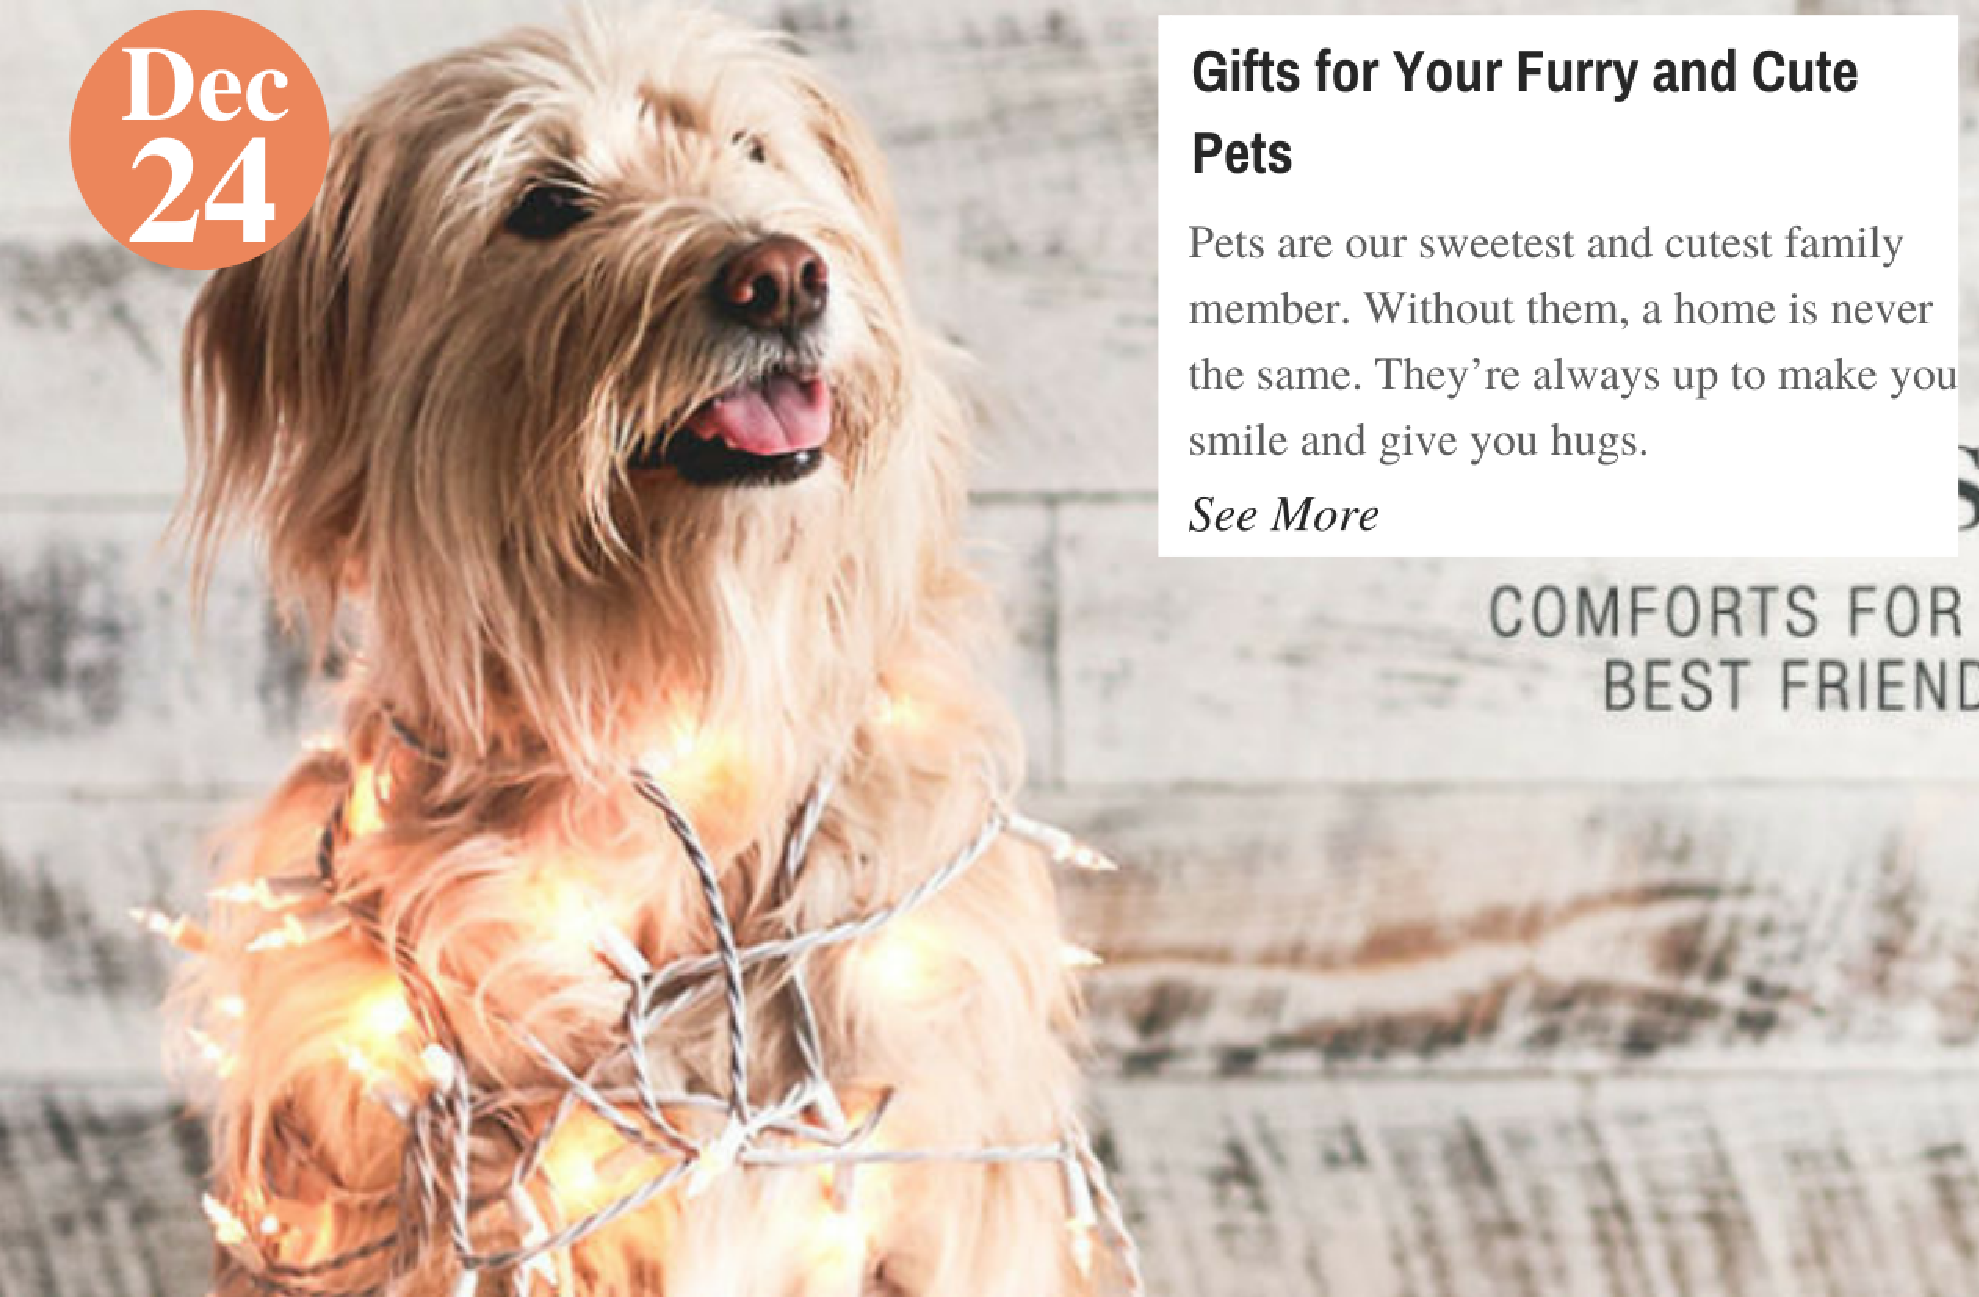 Gifts for Your Furry and Cute Pets